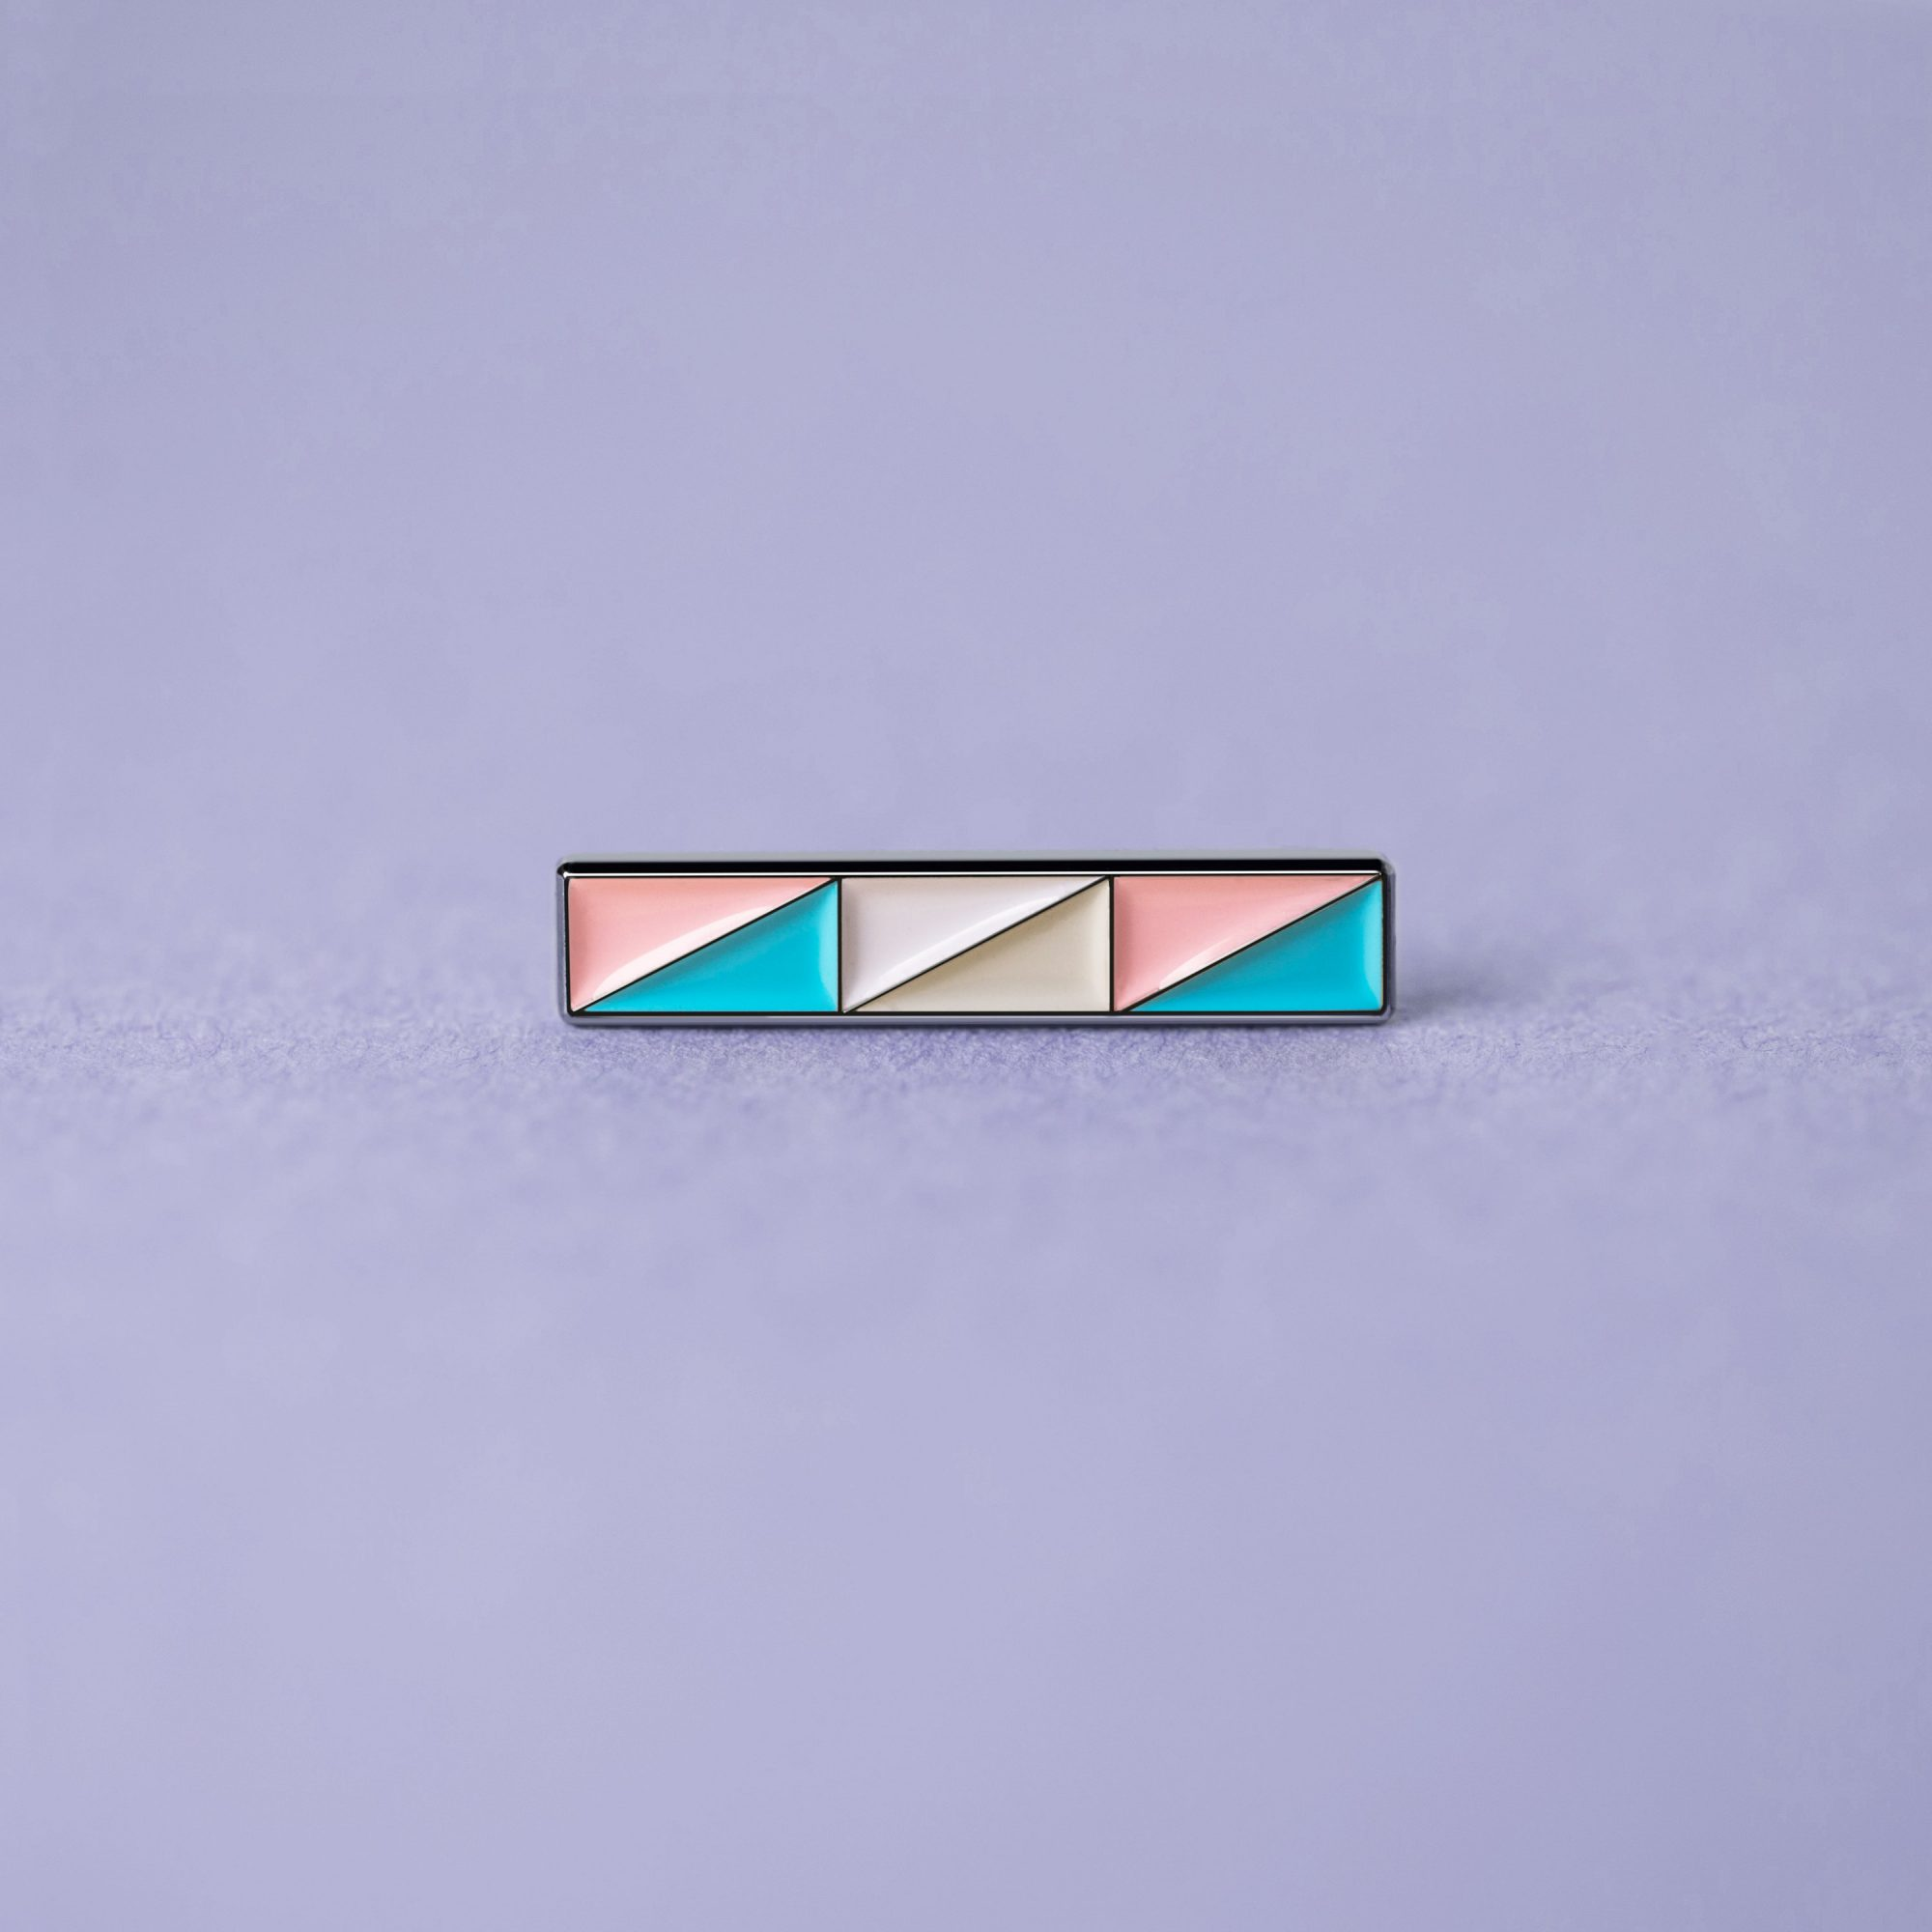 A close up photo of a transgender flag pin badge